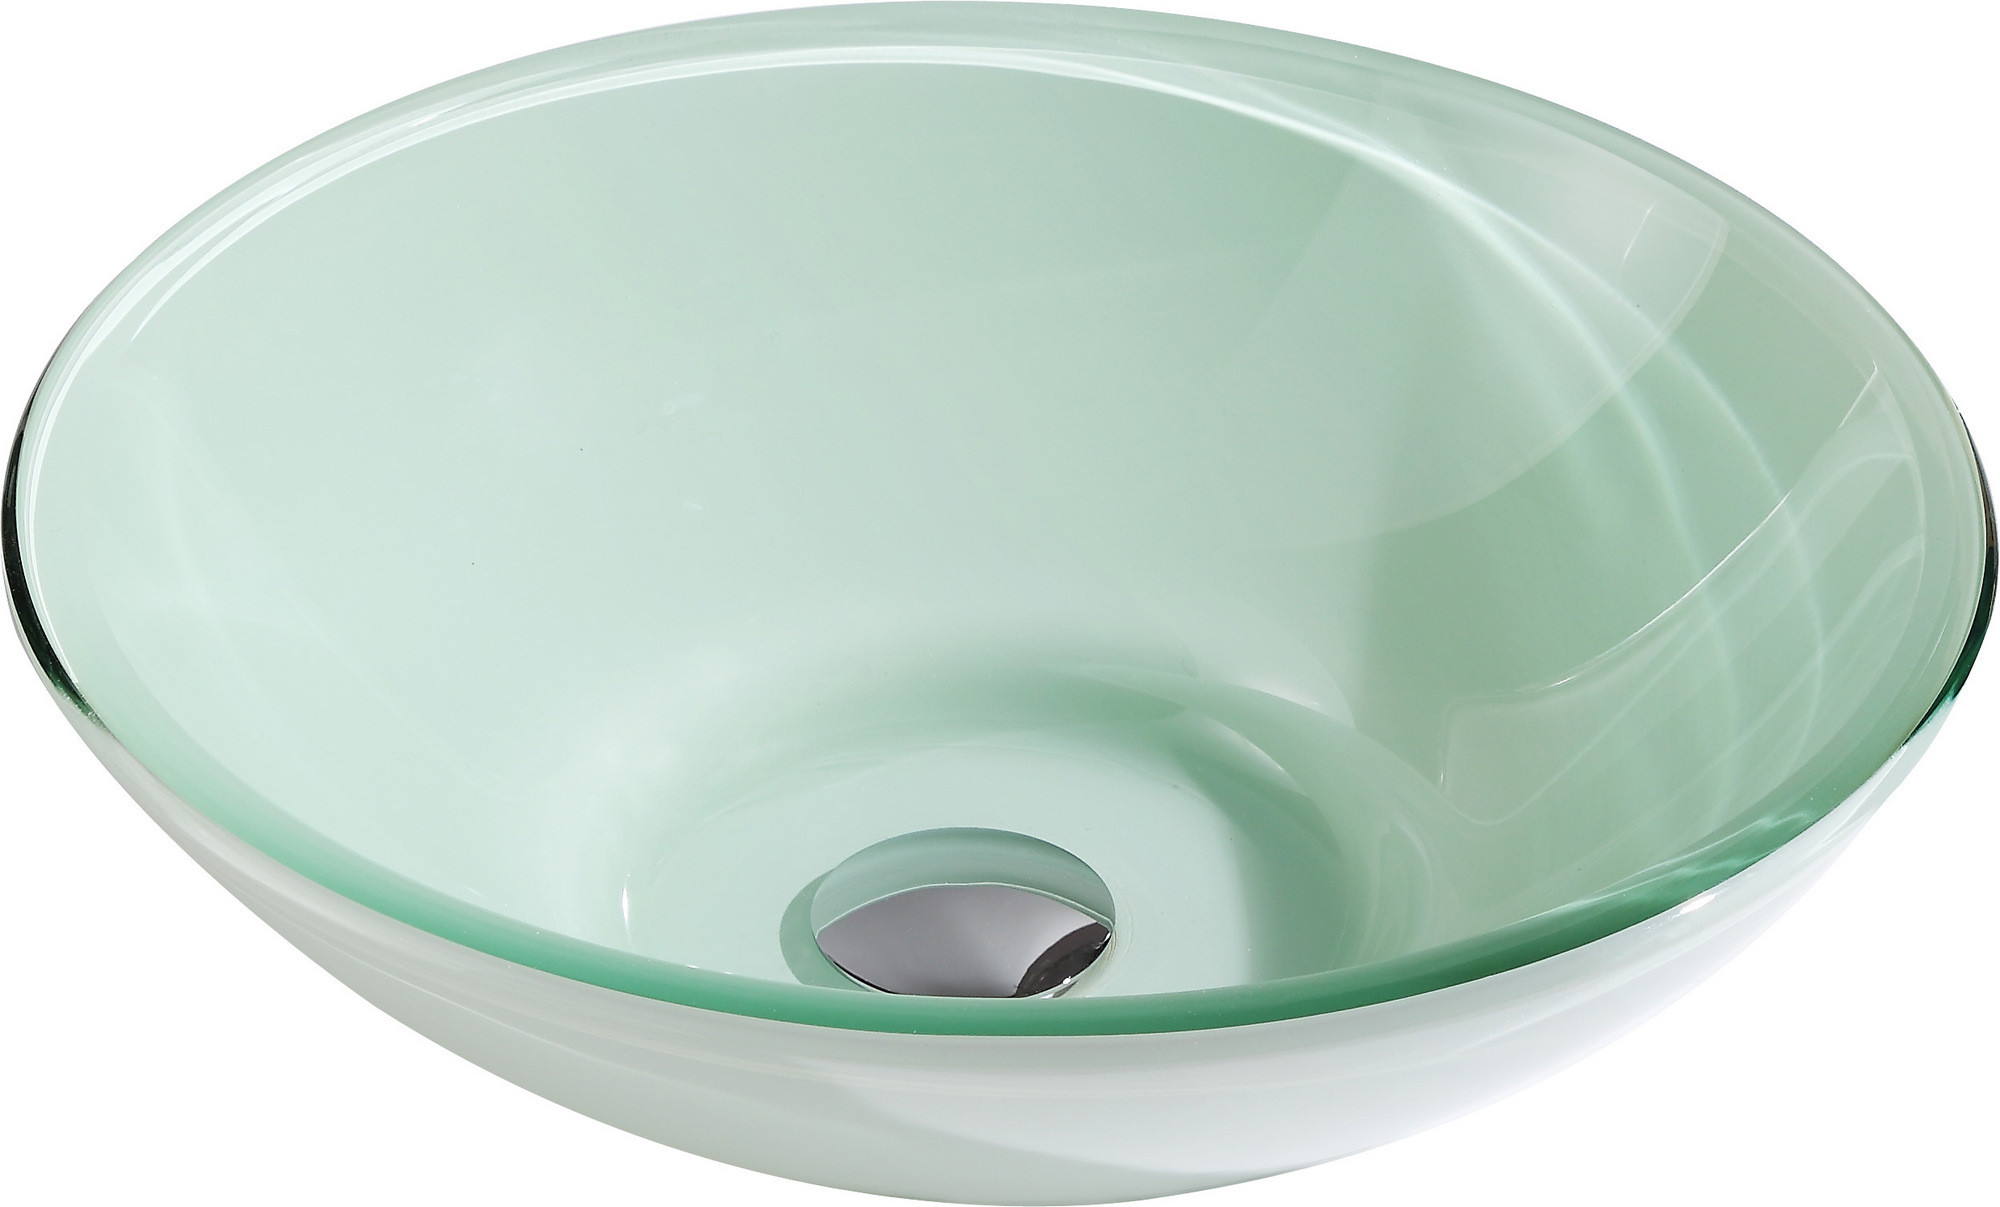 ANZZI LS-AZ085 Pendant Series Deco-Glass Vessel Sink In Lustrous Frosted